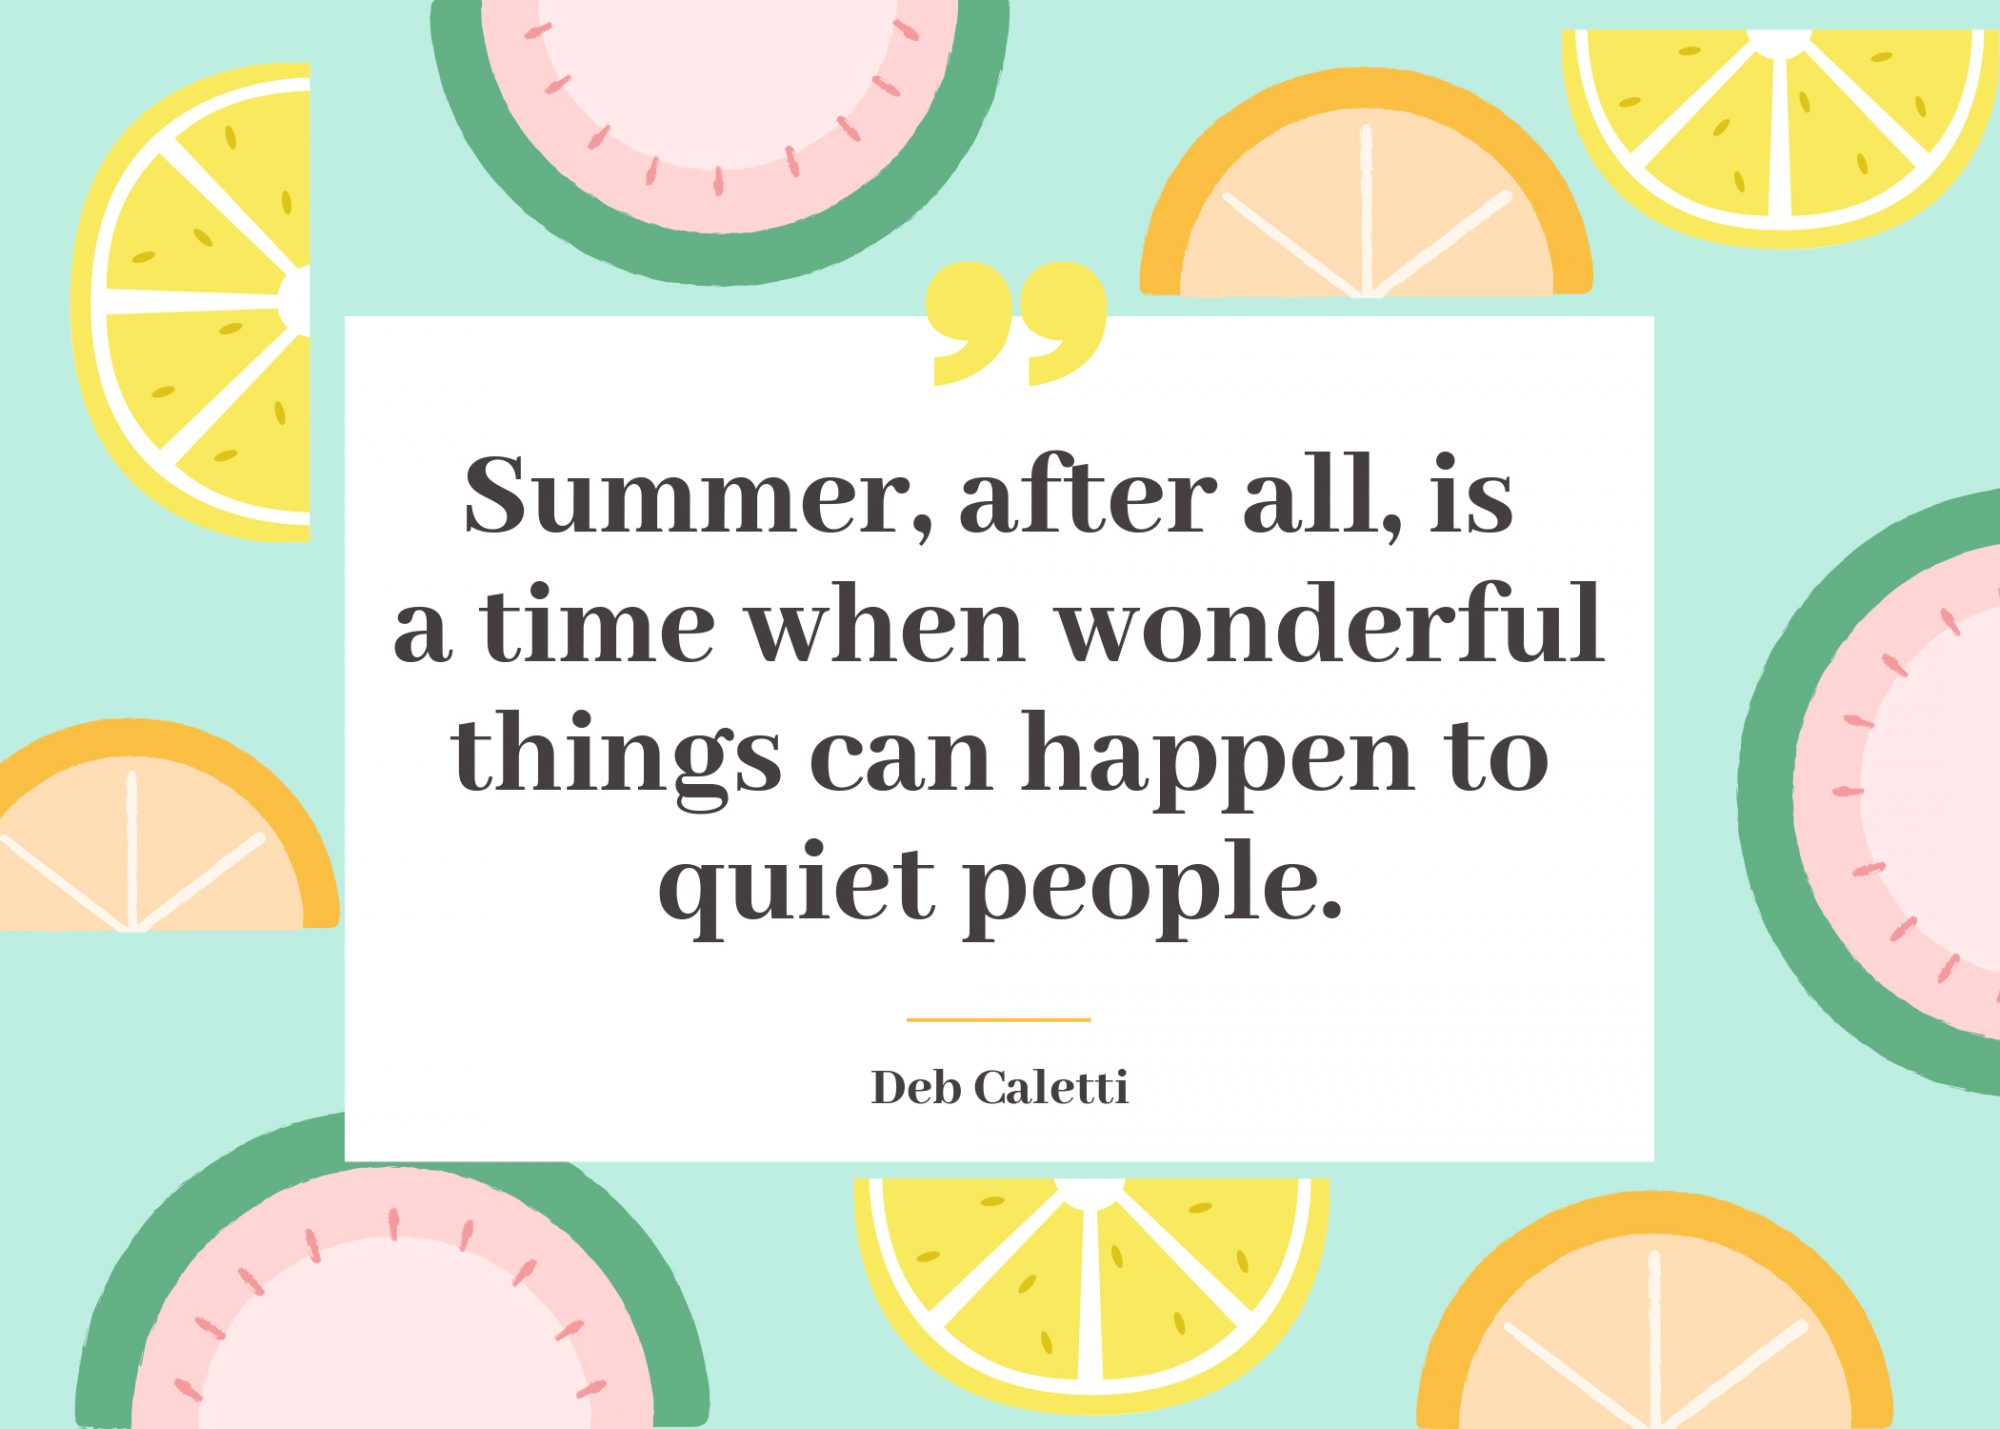 More Summer Quotes from Literature